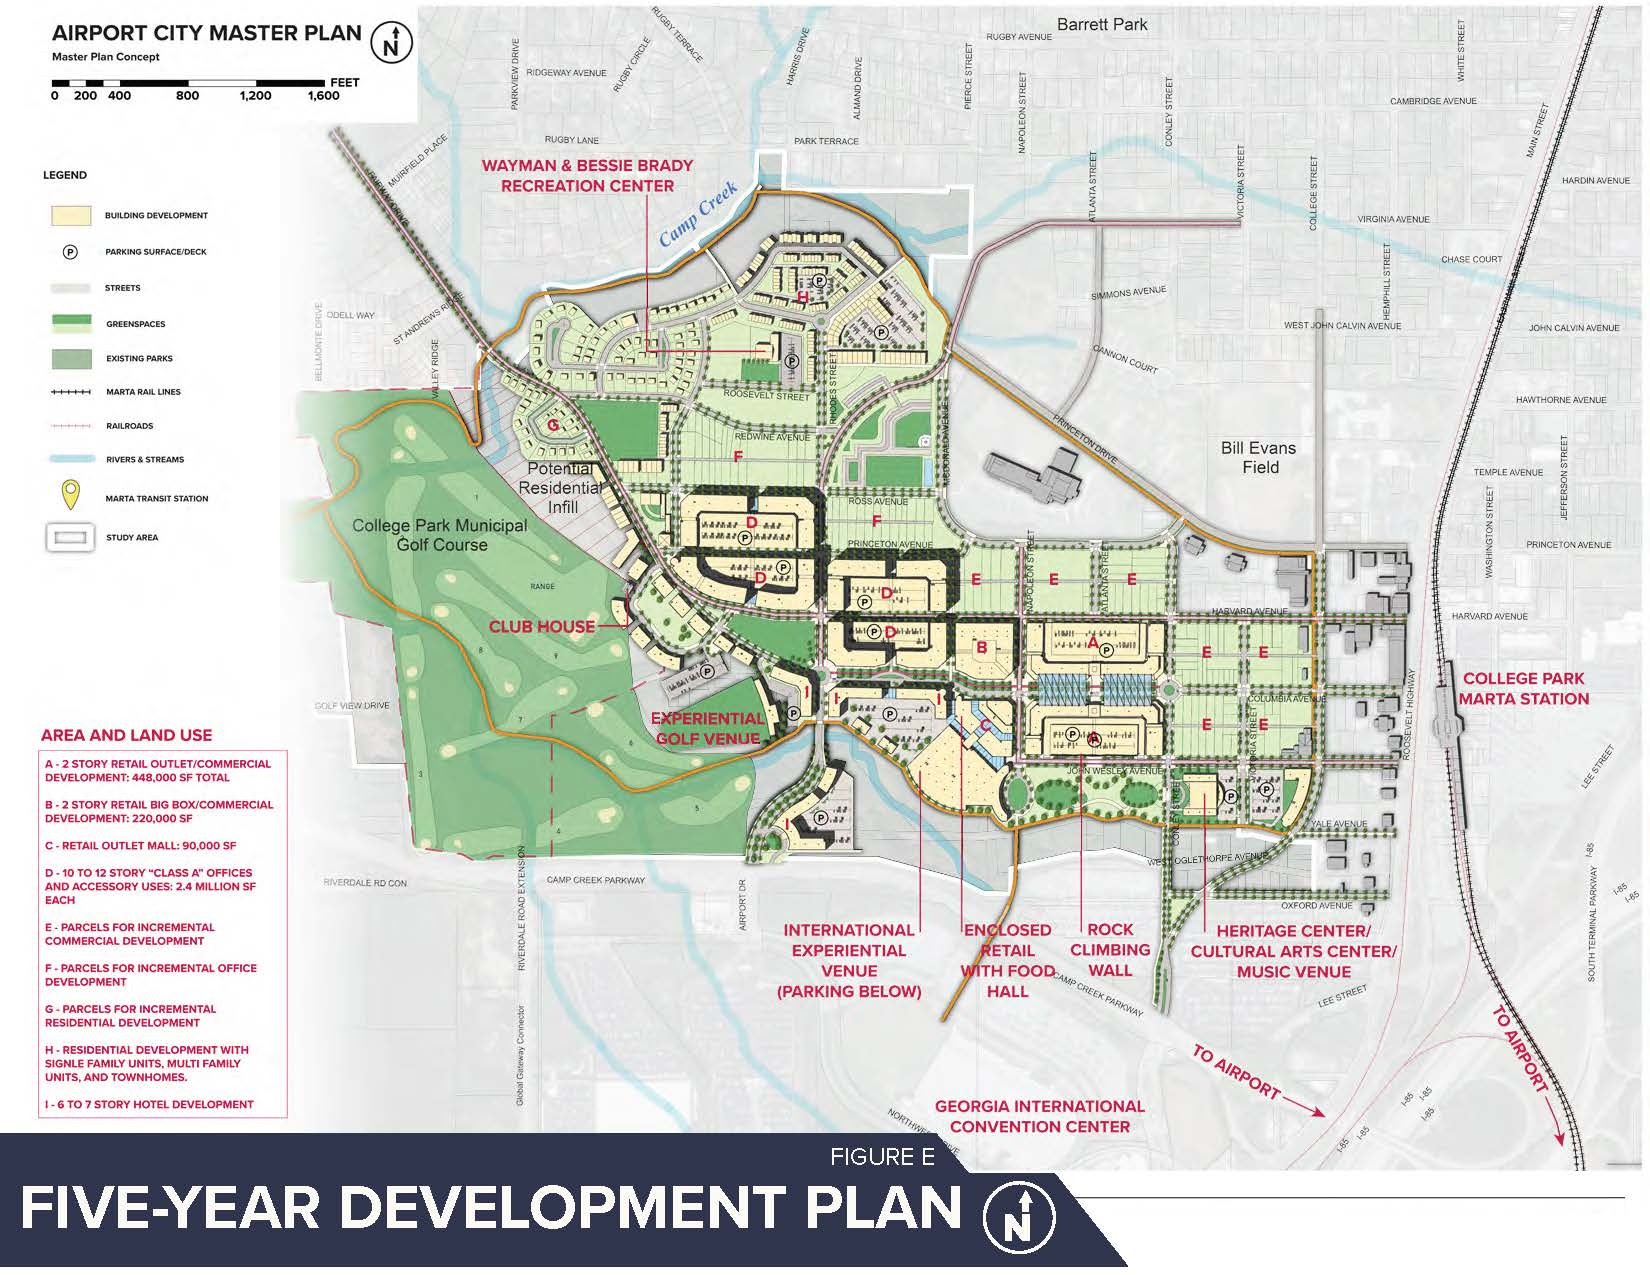 Airport City College Park Master Plan